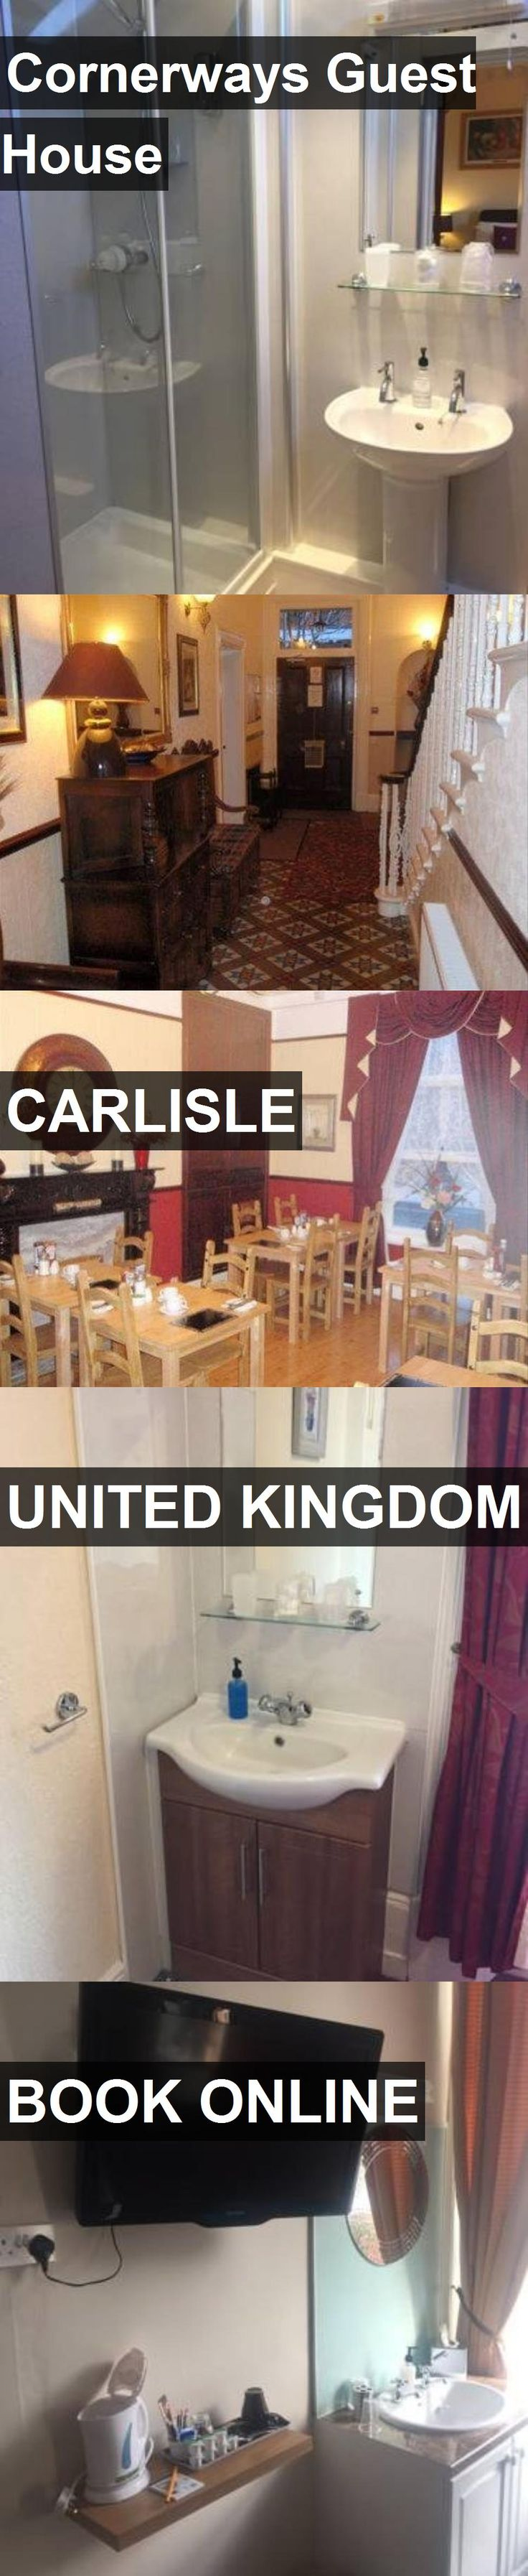 Hotel Cornerways Guest House in Carlisle, United Kingdom. For more information, photos, reviews and best prices please follow the link. #UnitedKingdom #Carlisle #hotel #travel #vacation